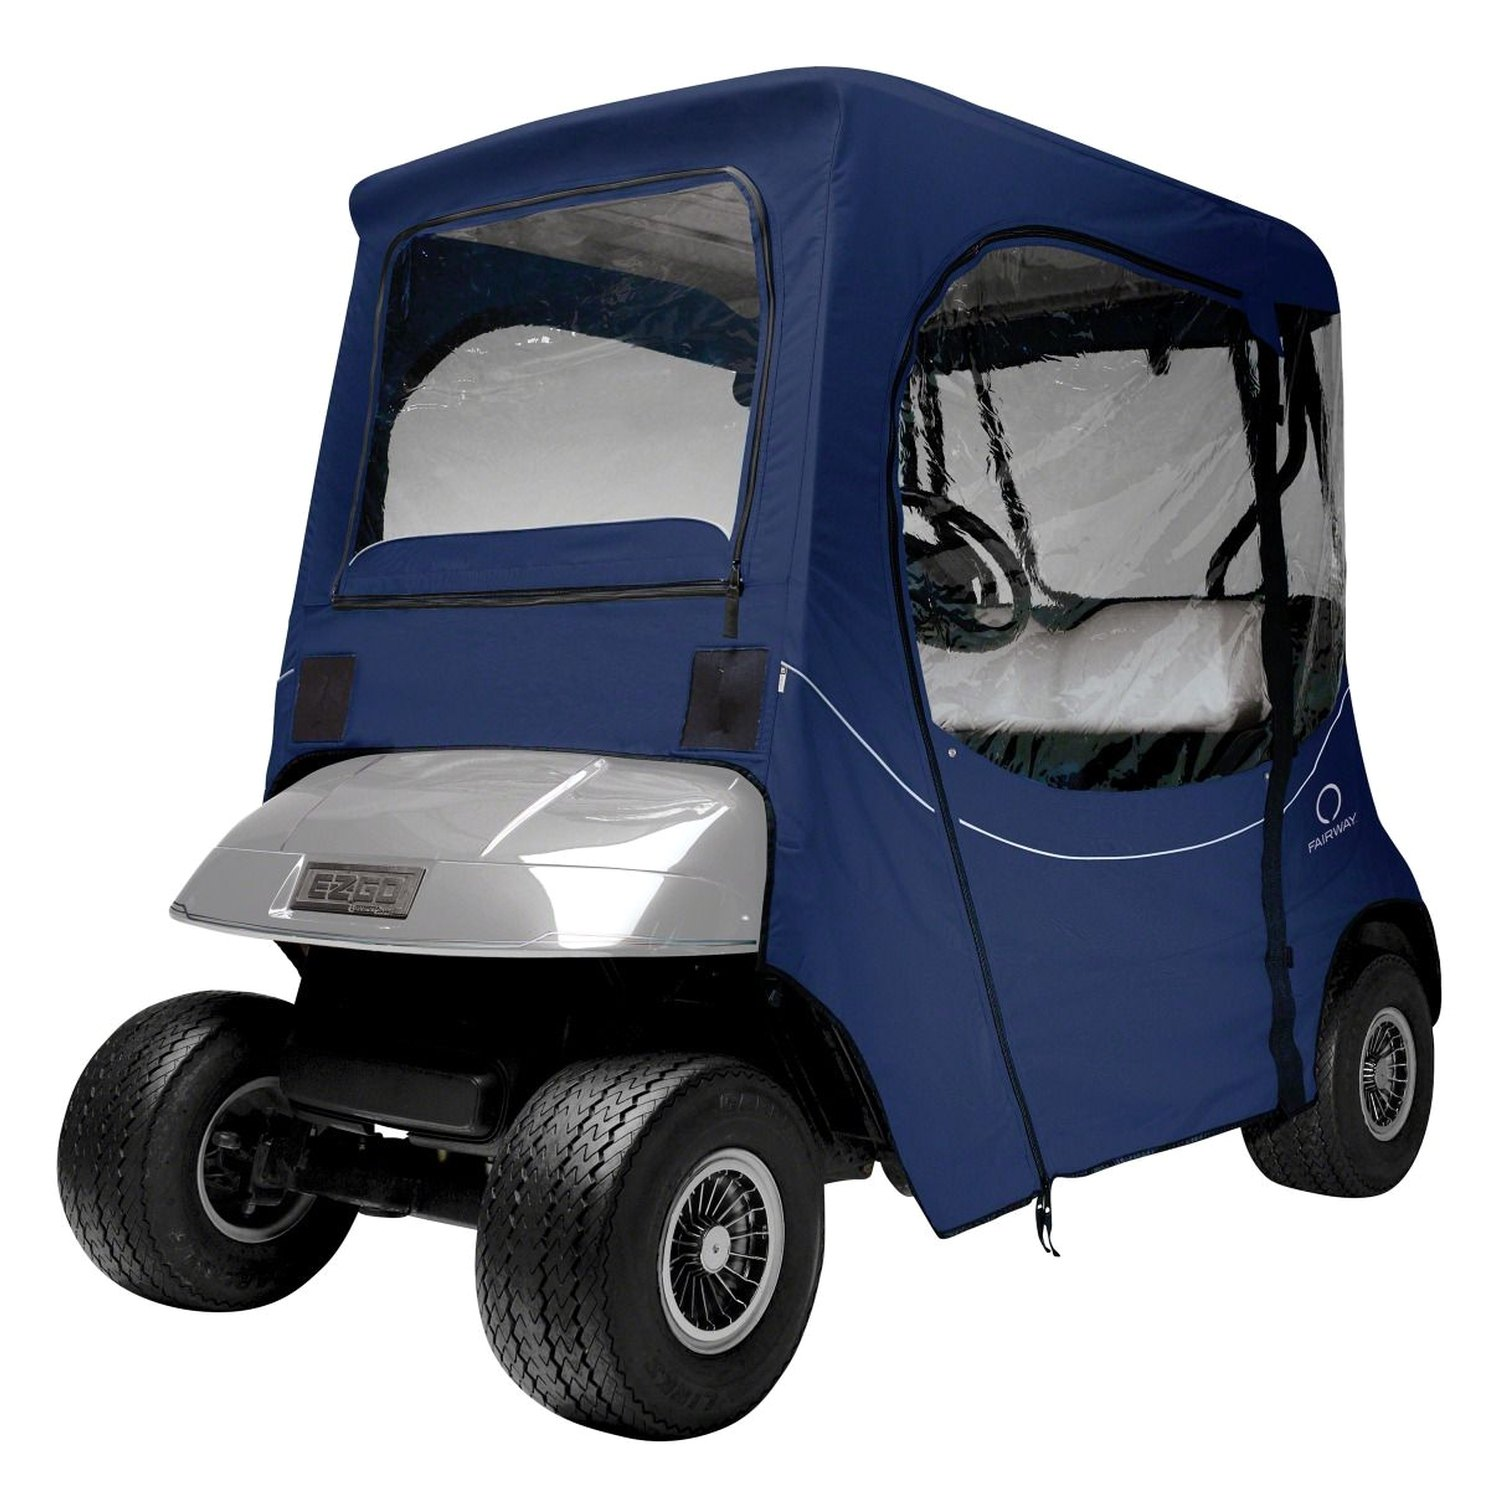 Clic Accessories® 40-059-335501-00 - Fairway™ Fadesafe™ E-Z-Go™ on ezgo hunting golf carts, ezgo gas golf carts, ez go cart accessories, ezgo lifted carts, lsv golf carts and accessories, ezgo golf carts dealers, ezgo golf car, ezgo electric carts, ezgo utility golf carts, ezgo custom golf carts, ezgo txt electric manual, custom golf carts accessories, club car cart accessories, golf car accessories,